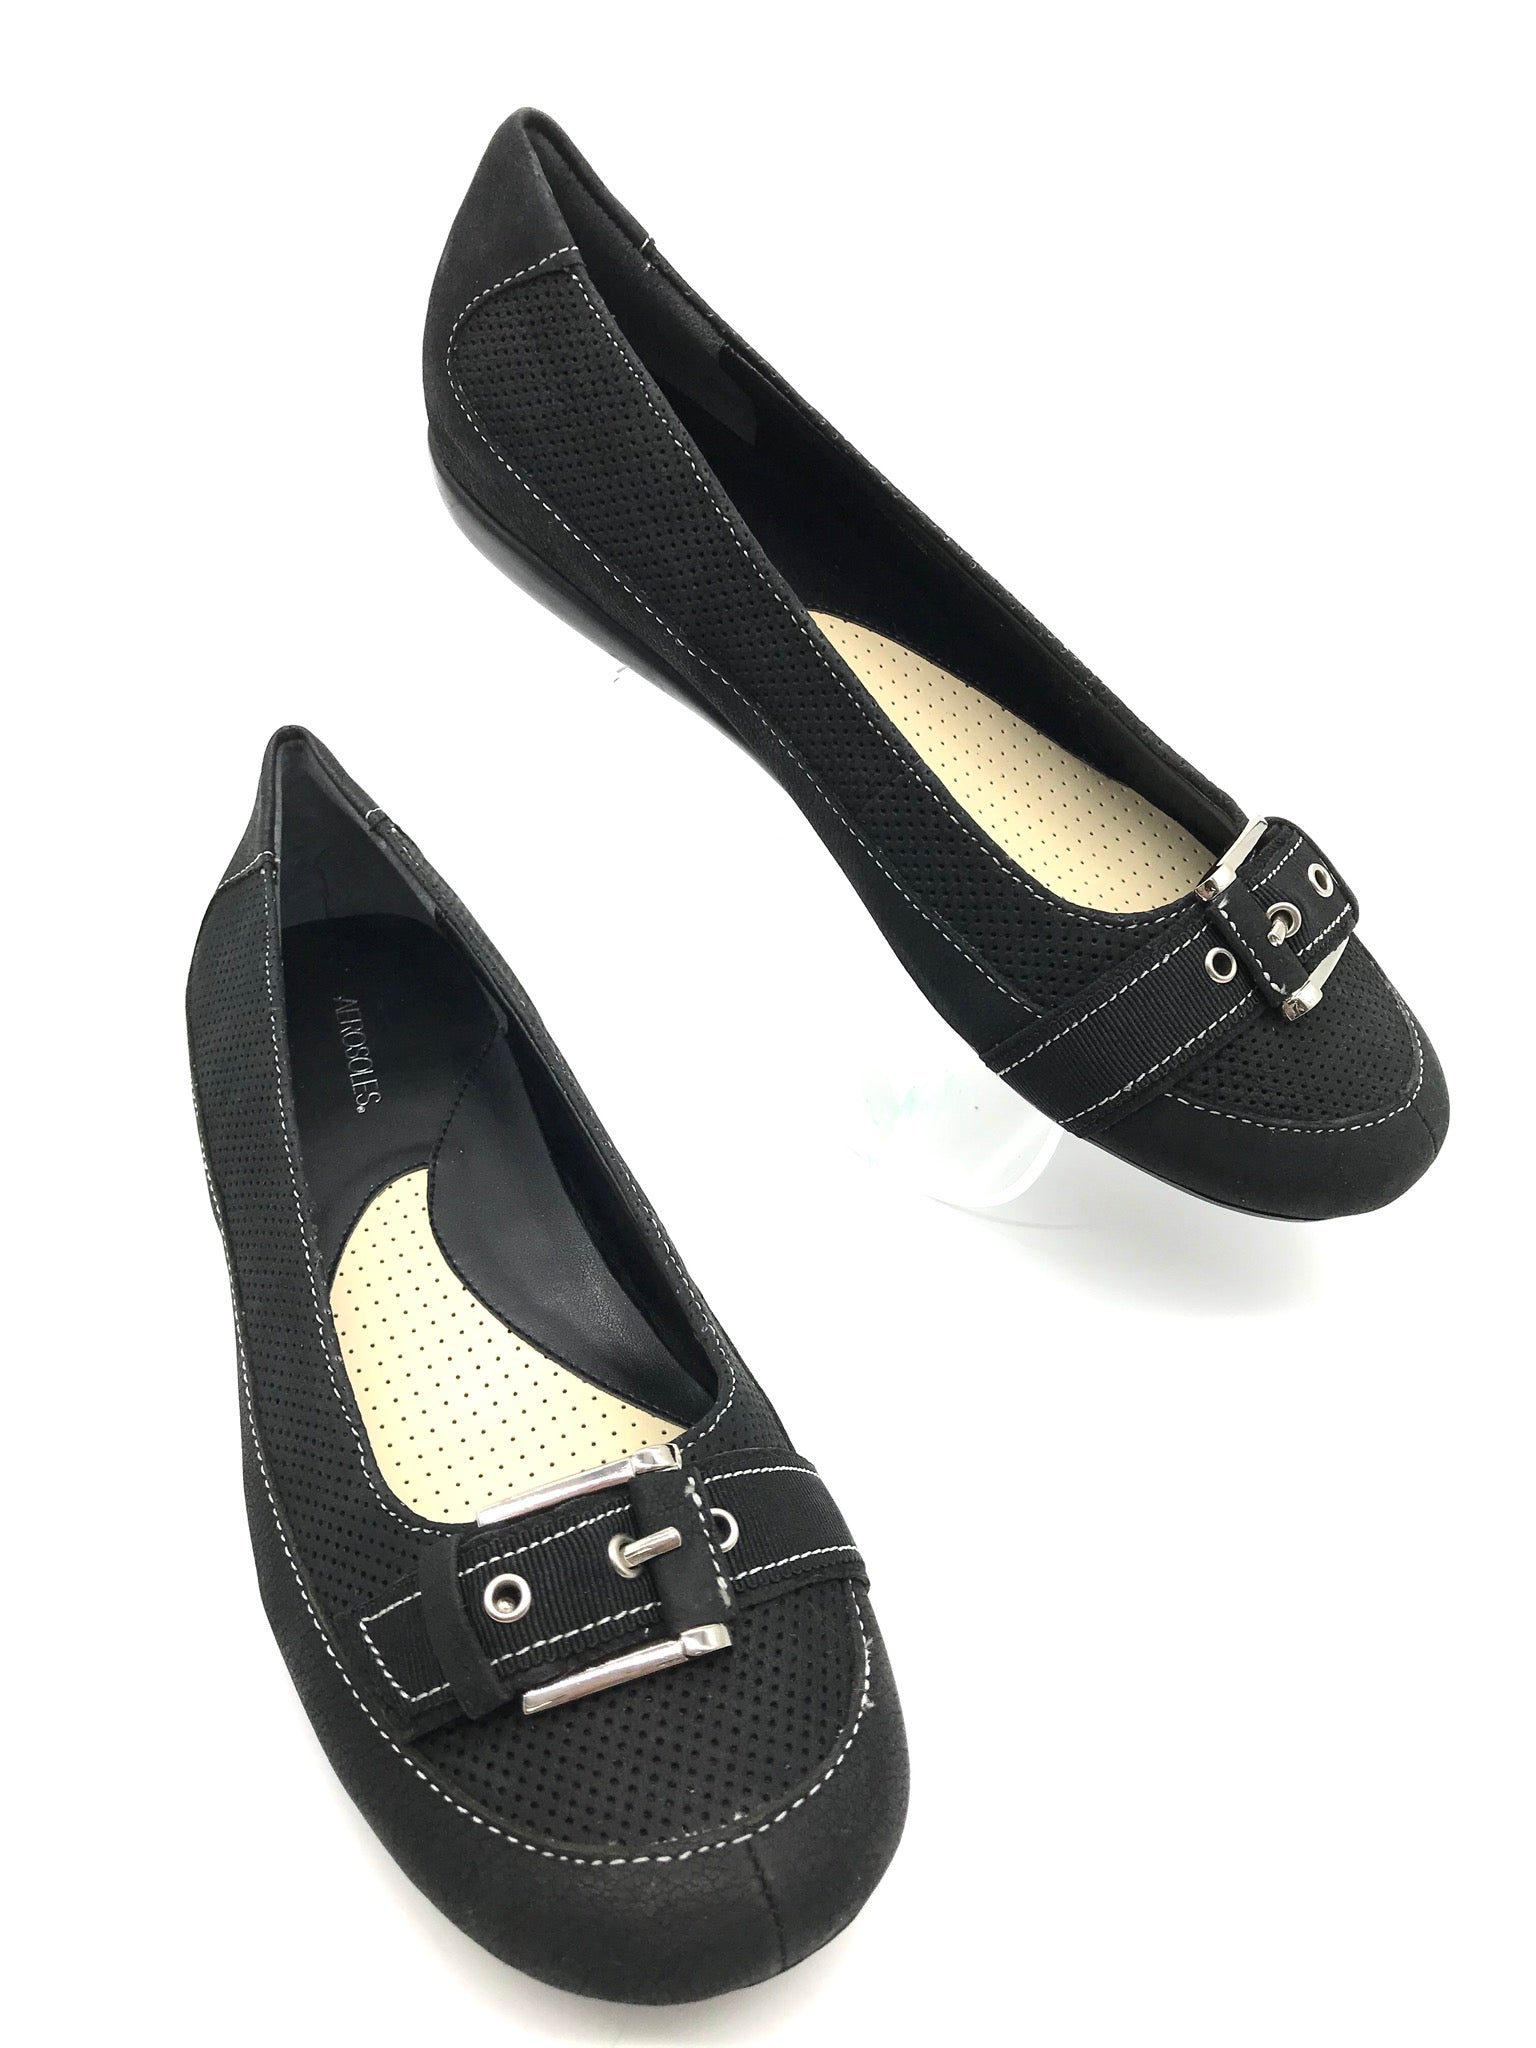 Primary Photo - BRAND: AEROSOLES <BR>STYLE: SHOES FLATS <BR>COLOR: BLACK <BR>SIZE: 8 <BR>SKU: 262-26275-69120<BR>NEW WITHOUT TAGS